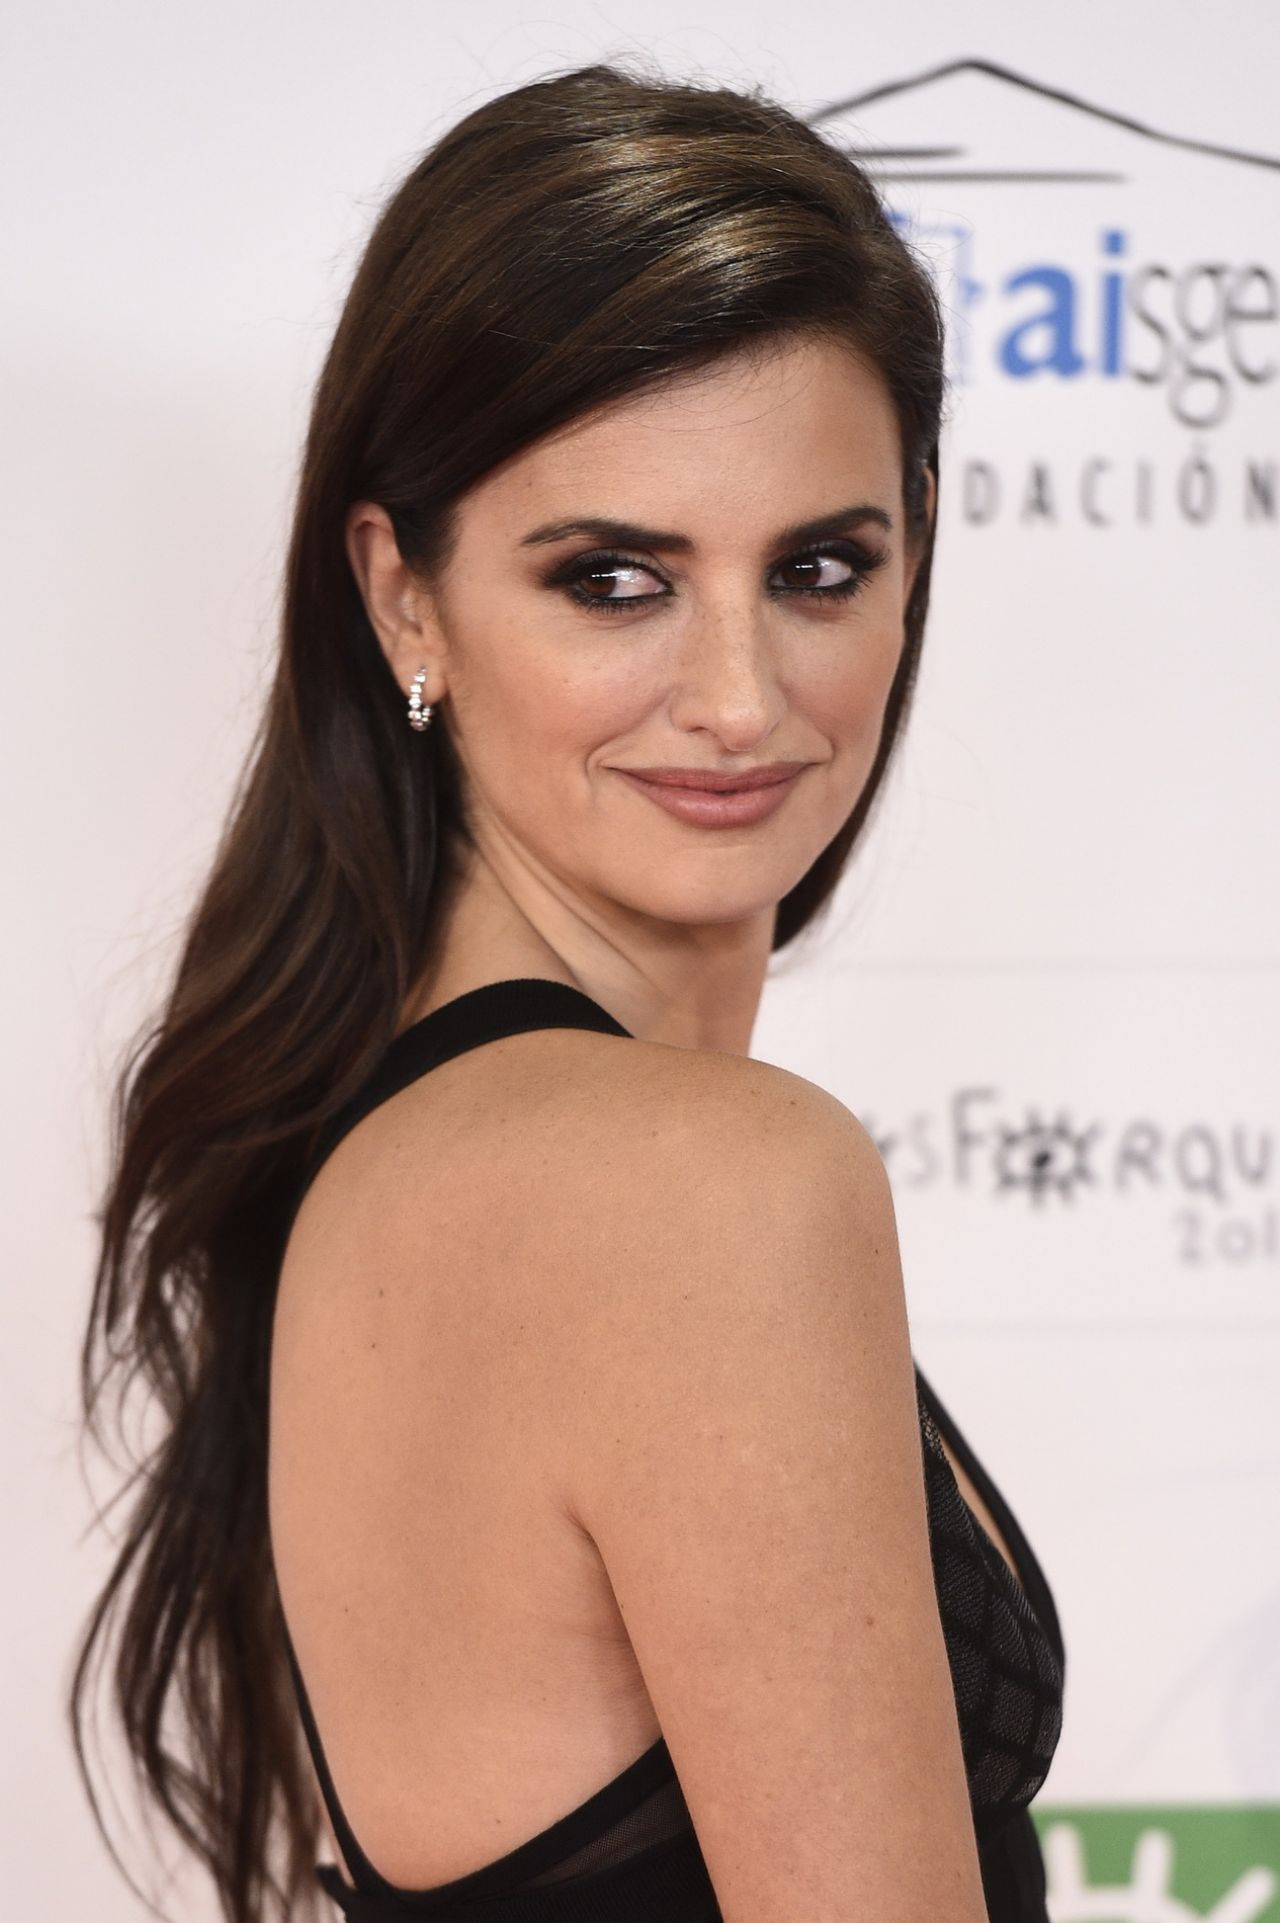 Penelope Cruz Xxi Jose Maria Forque Awards In Madrid 1